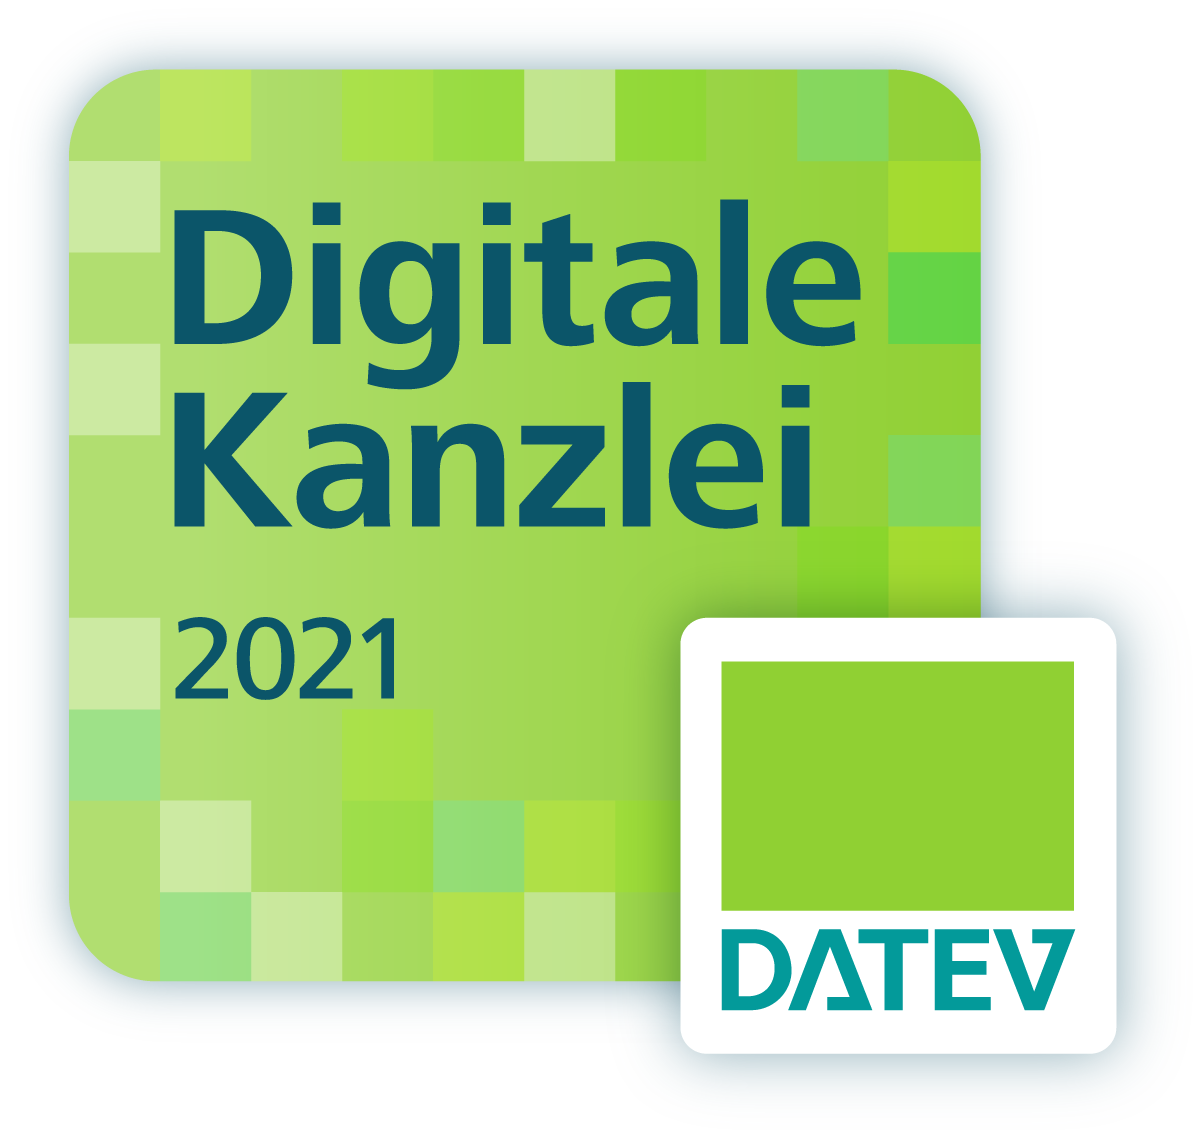 DATEV Digitale Kanzlei 2021